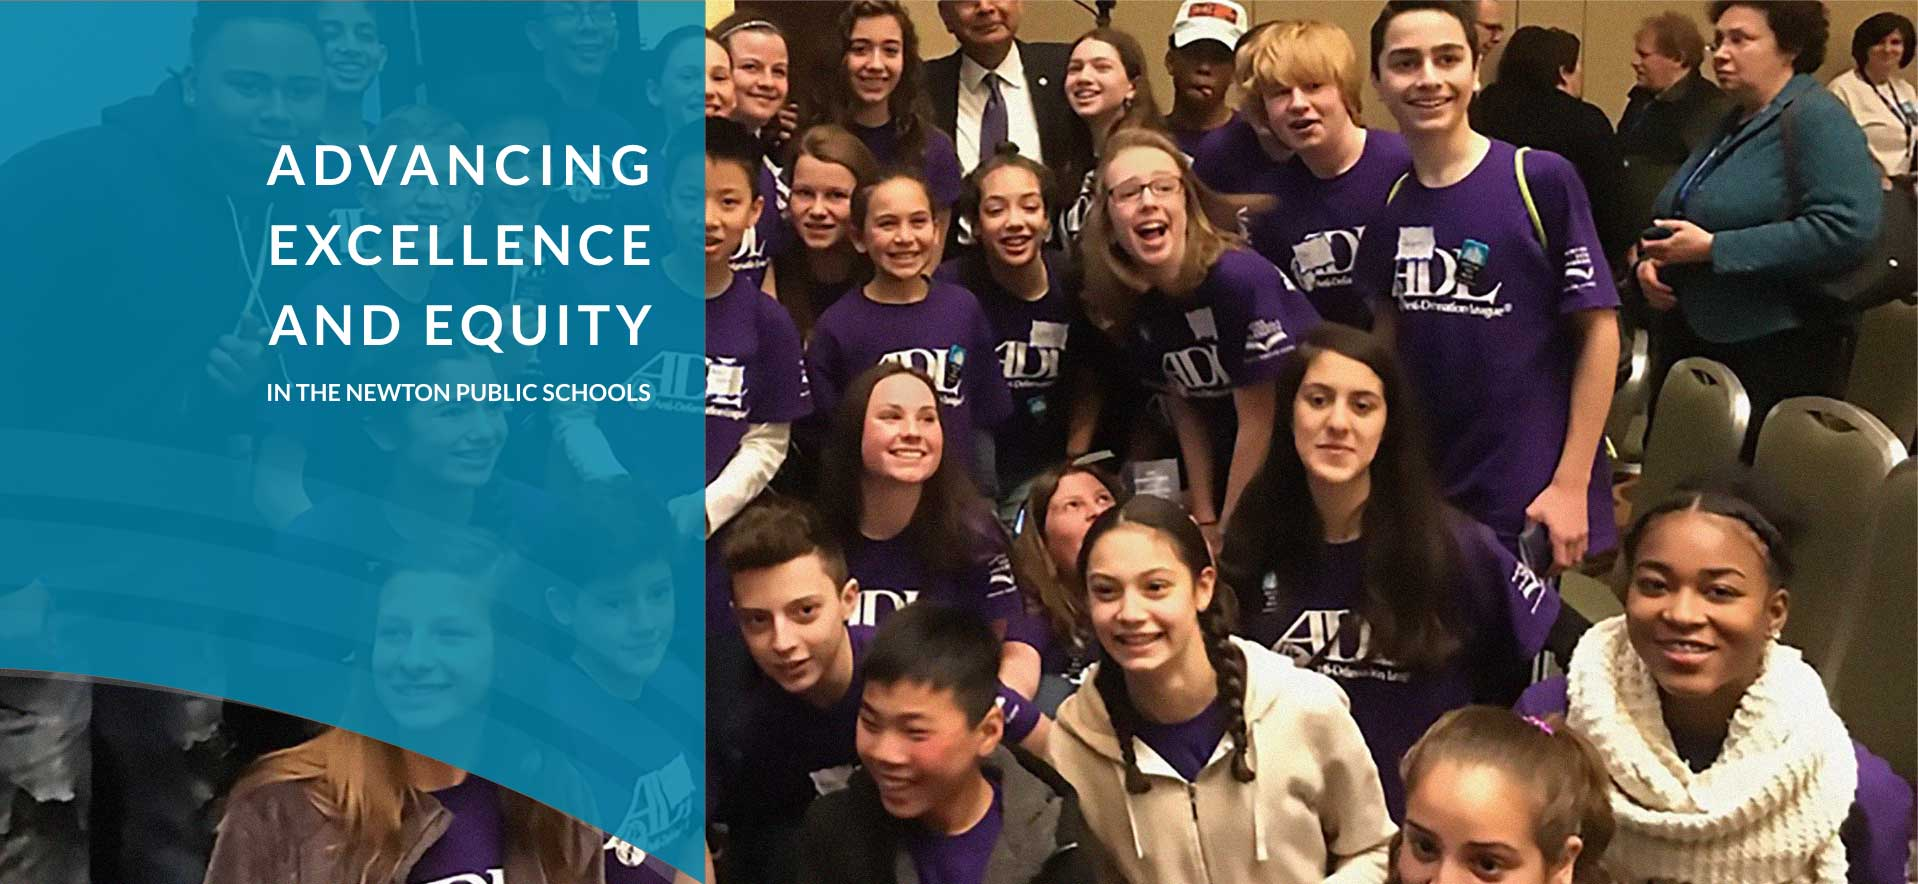 Advancing Excellence and Equity in the Newton Public Schools